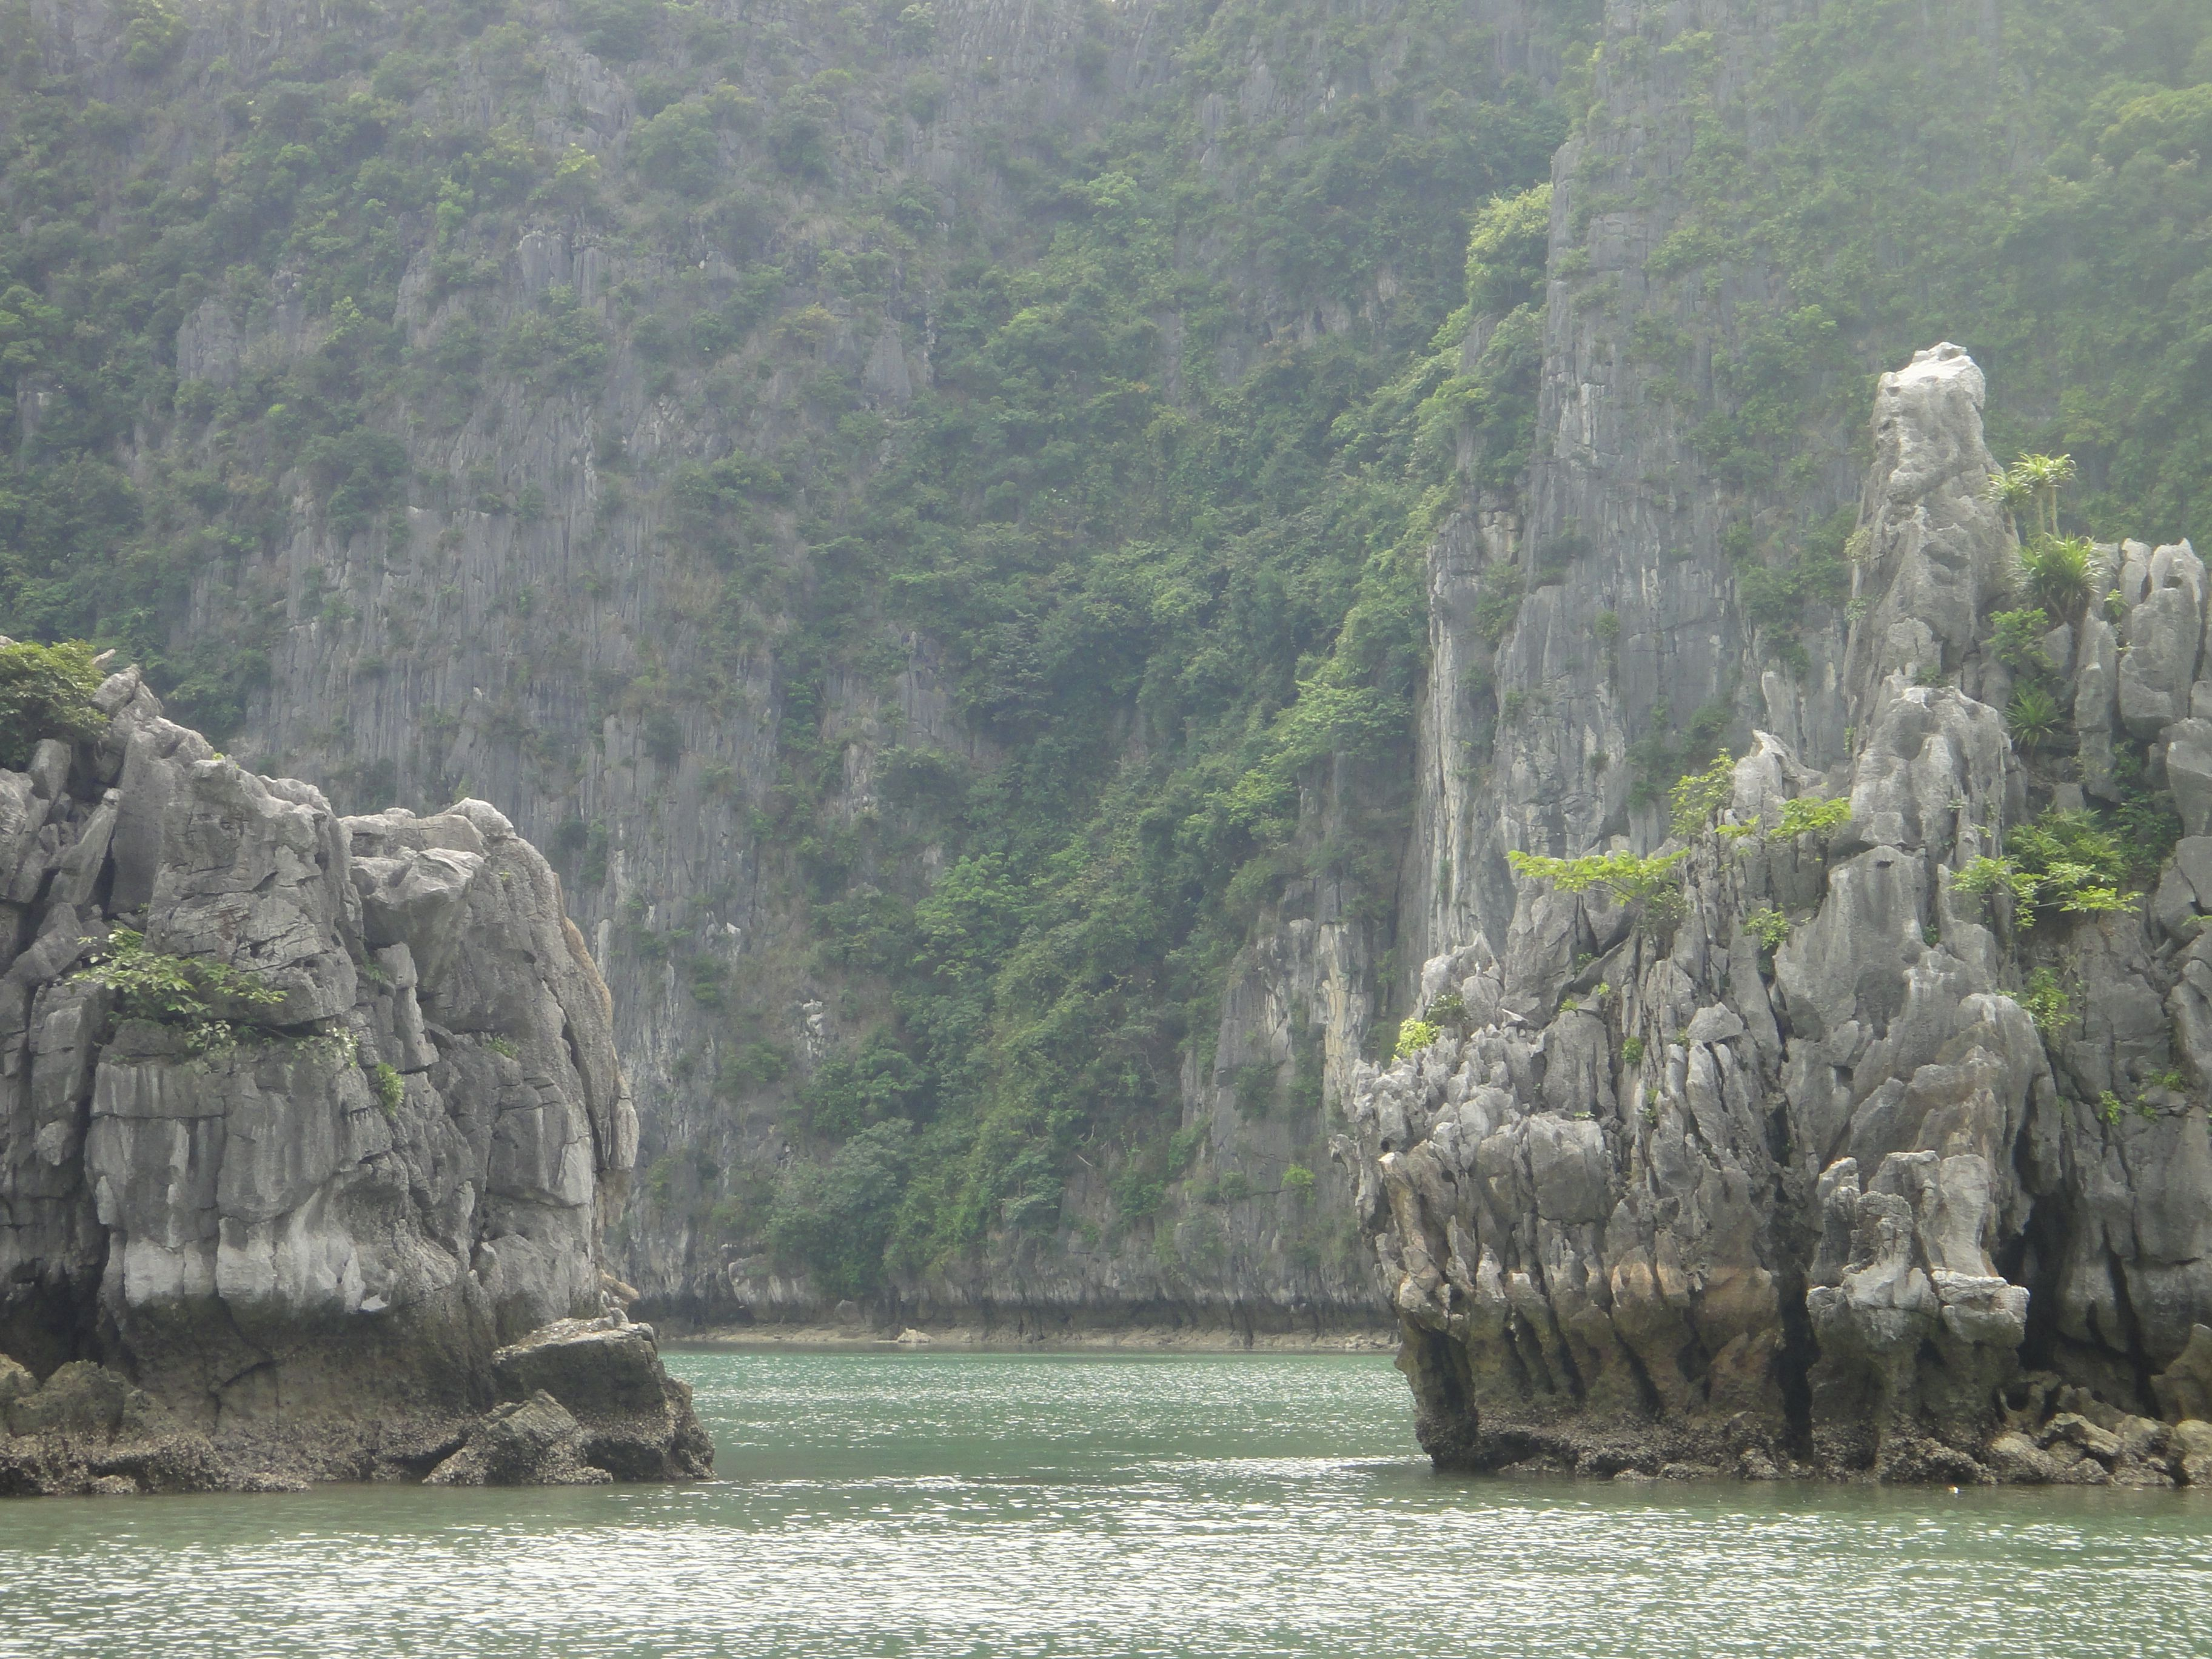 View of cliffs between twin pillars, Halong Bay, Vietnam.